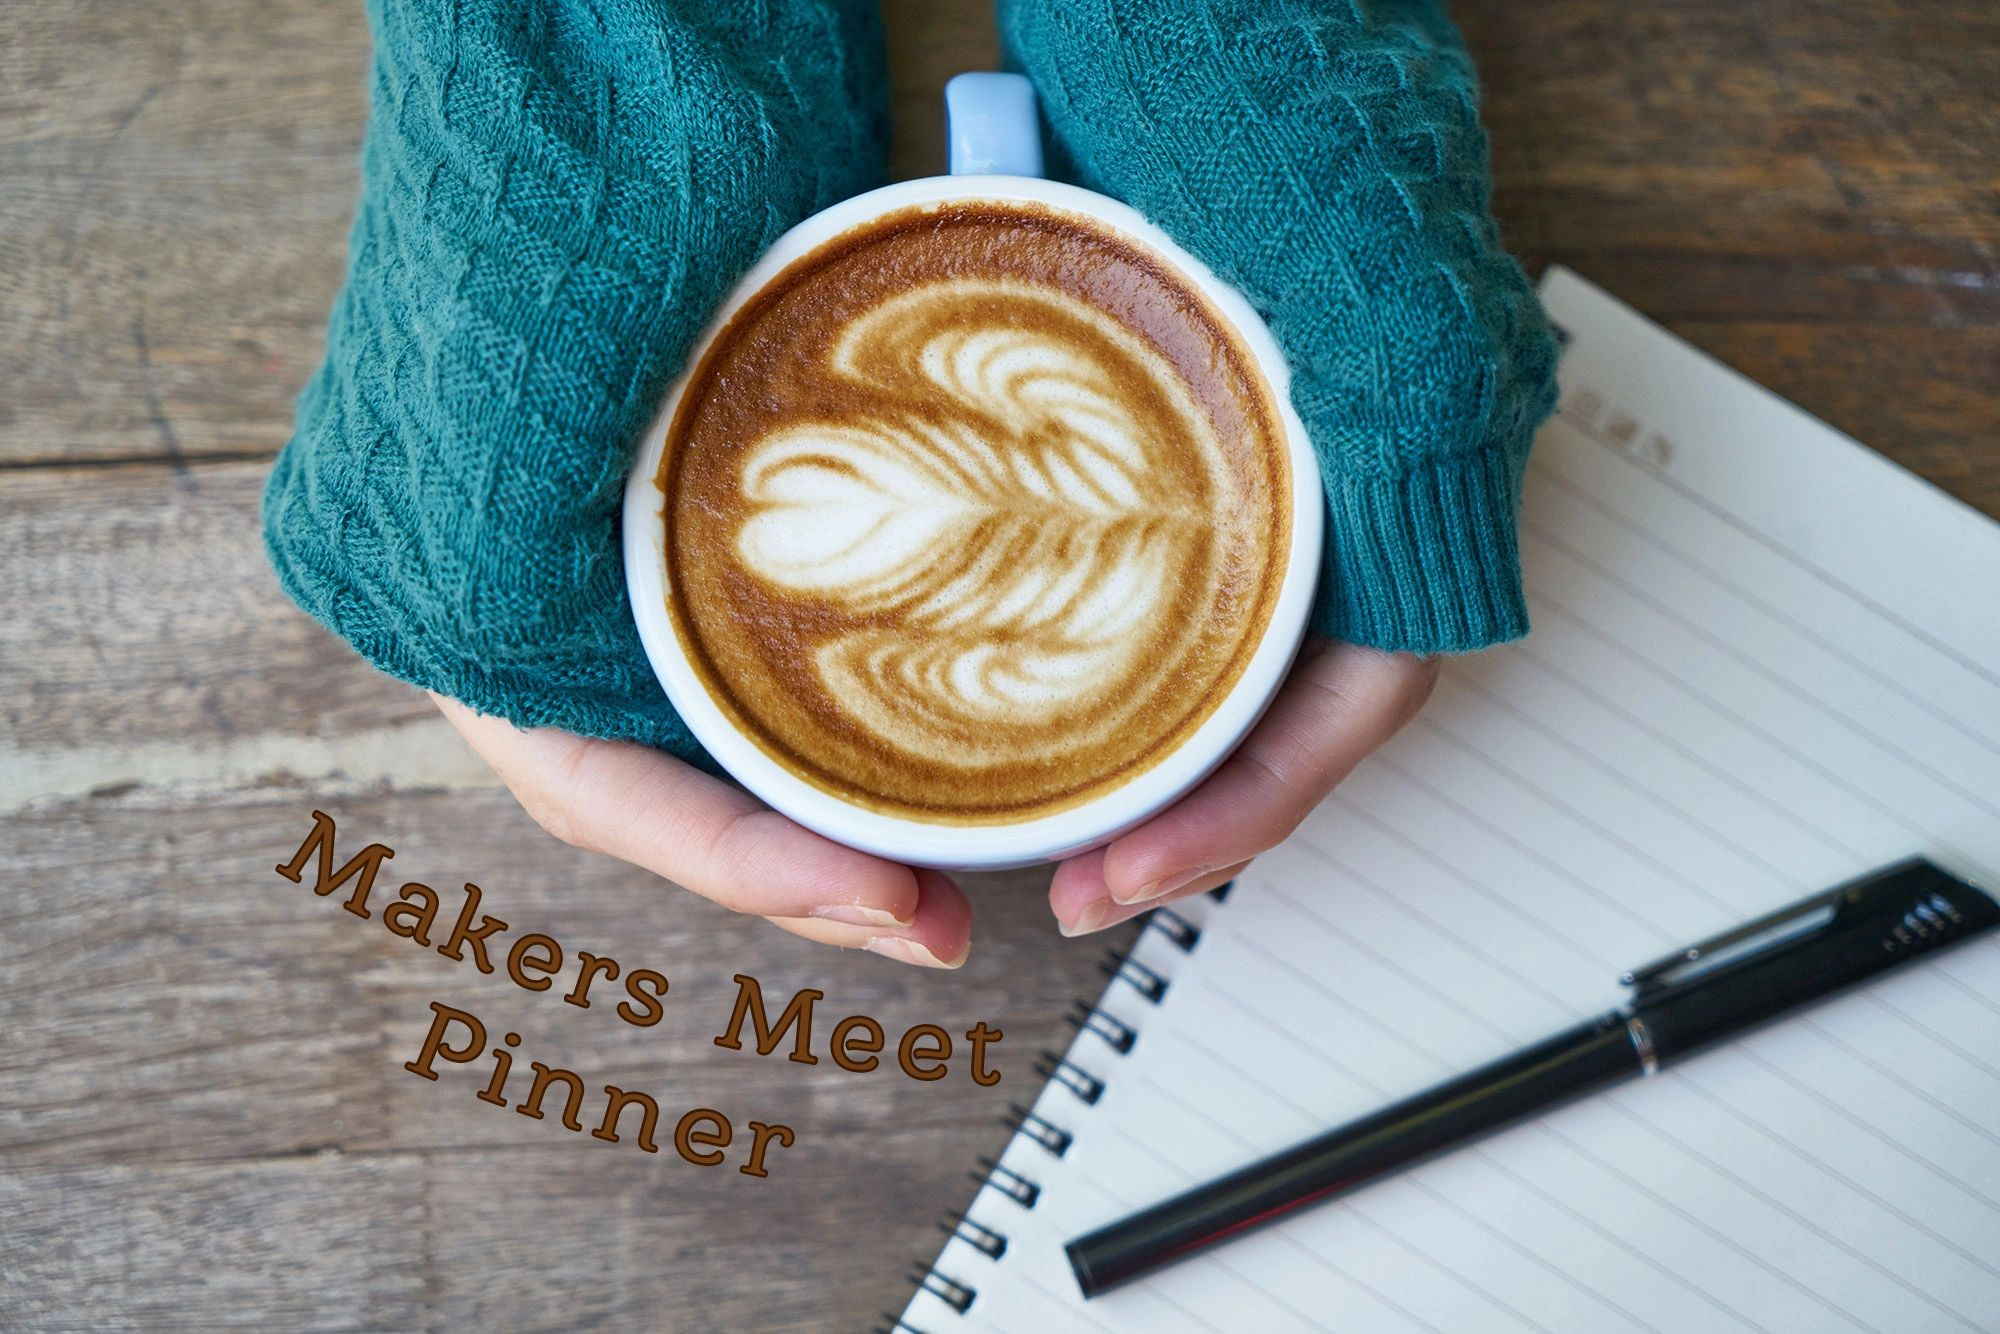 makers meet pinner harrow northwood eastcote knittine crochet club circle sewing craft group free